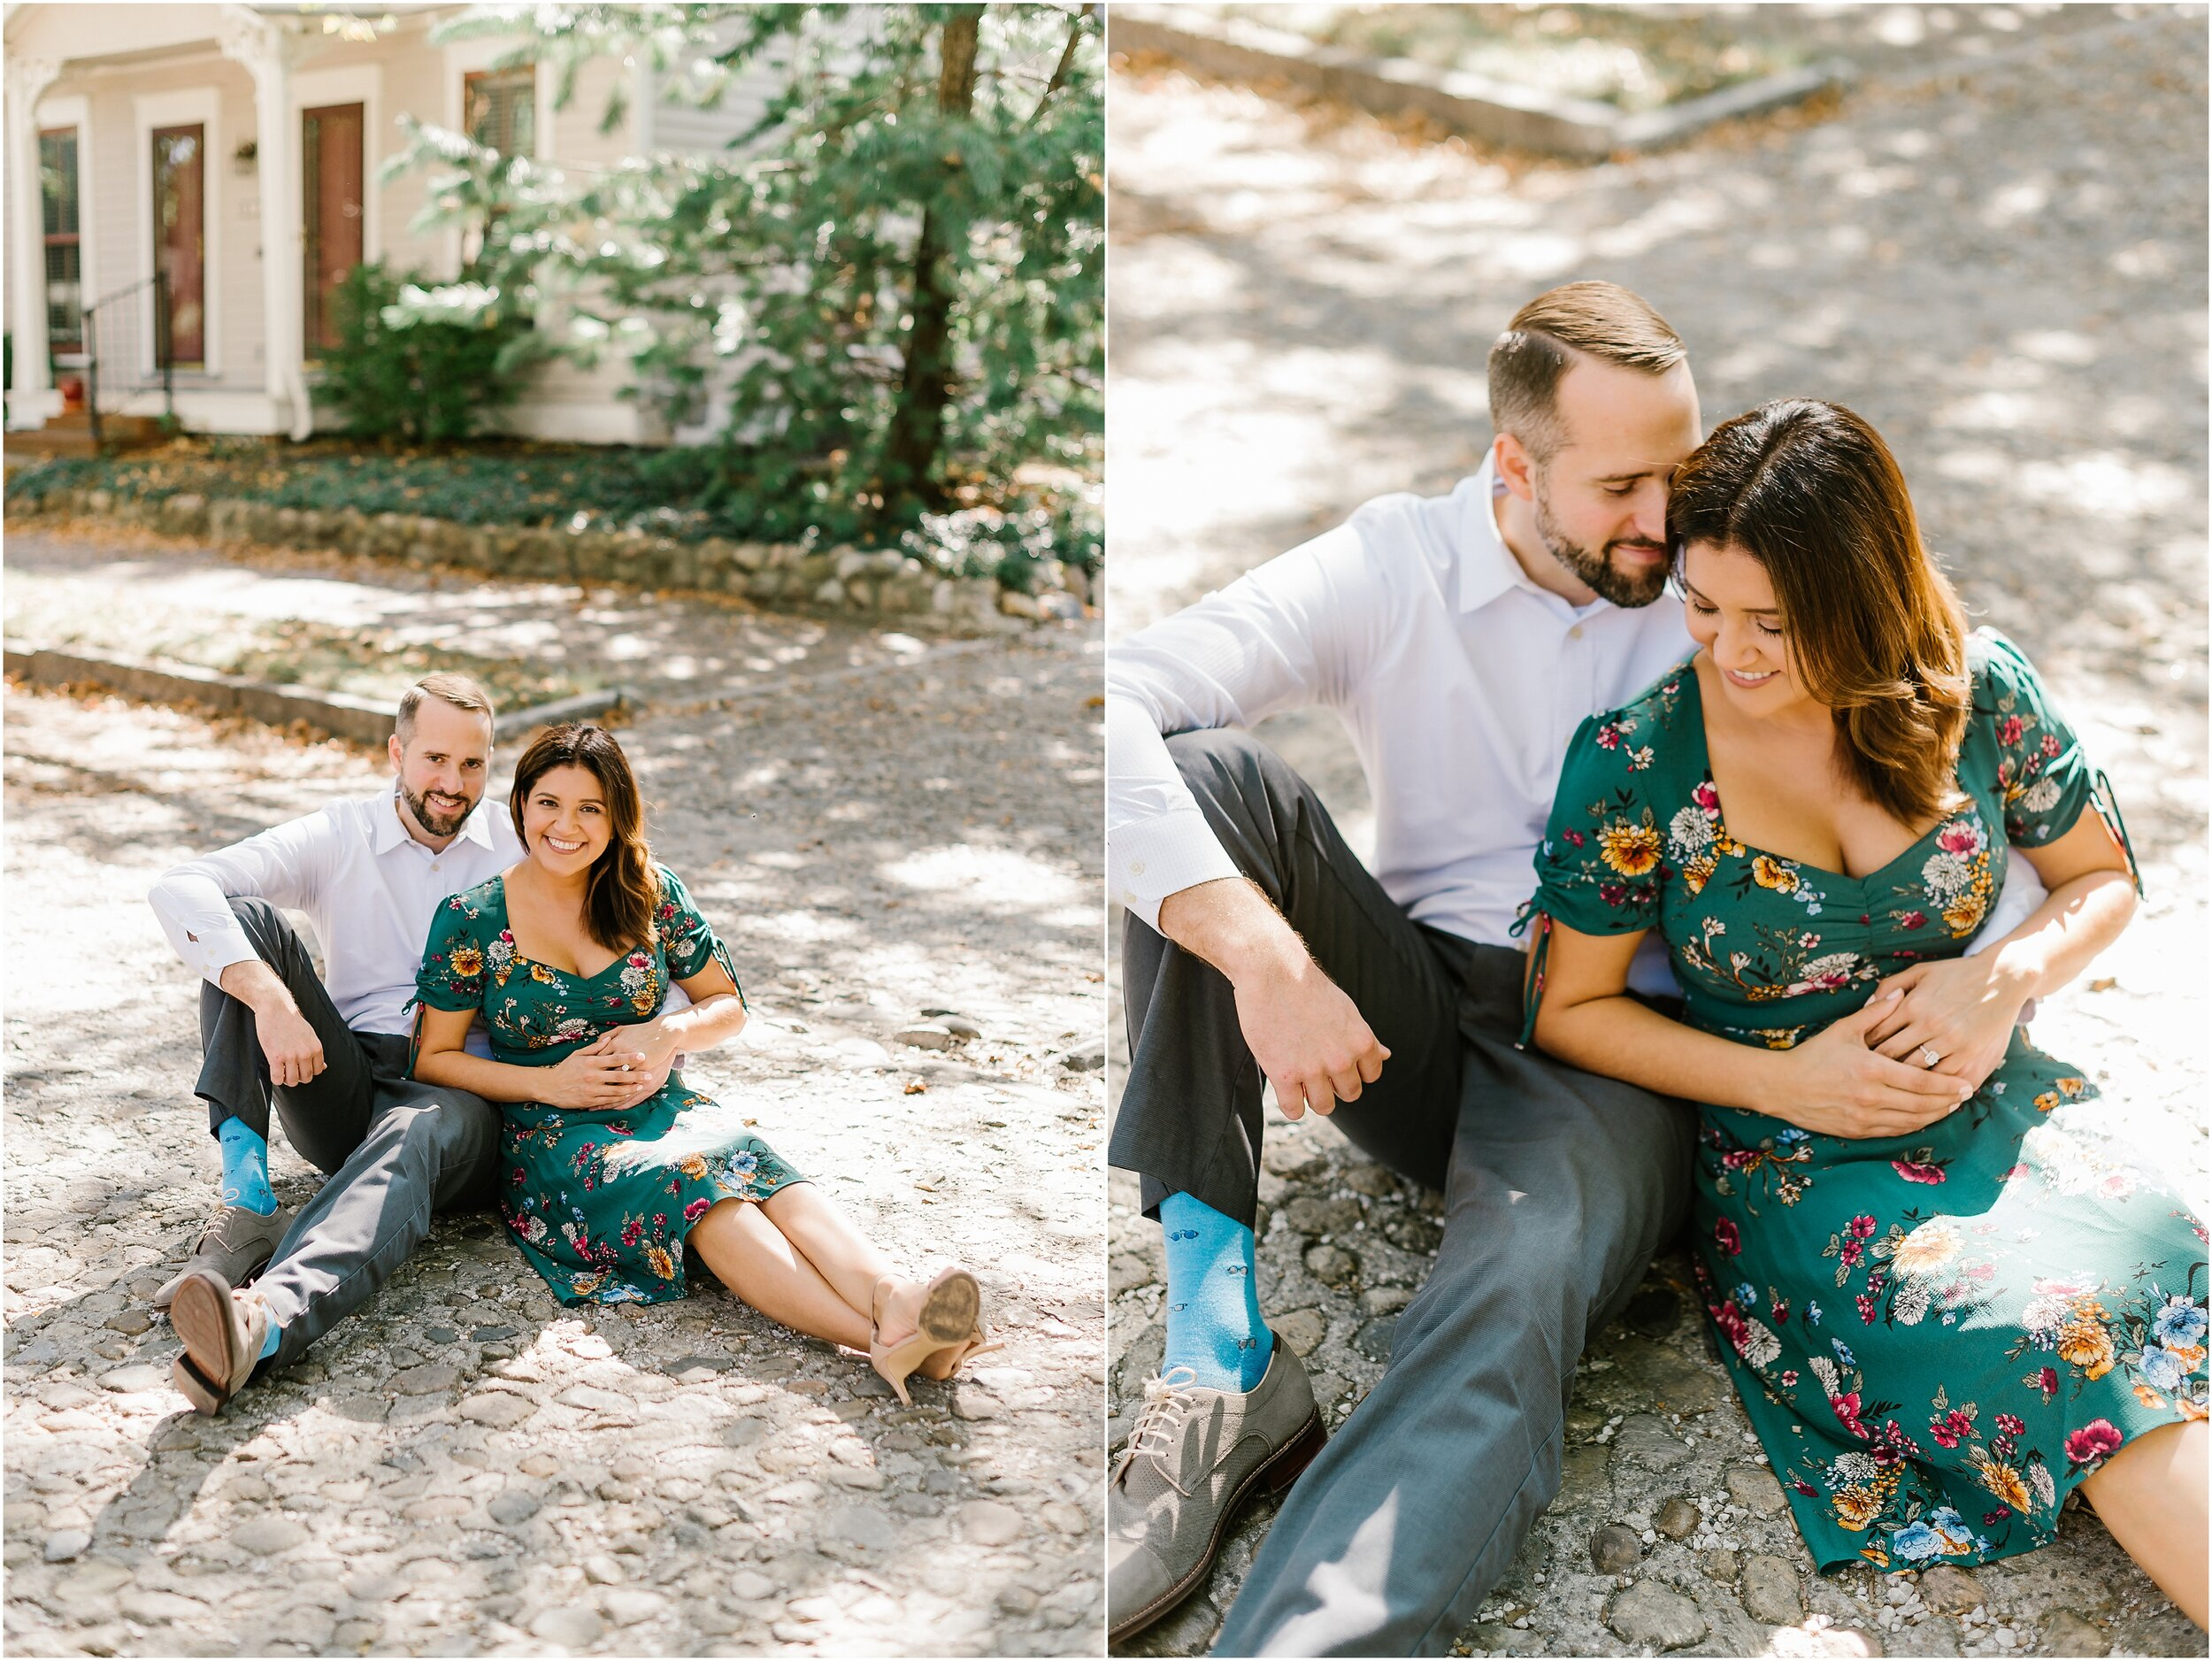 Rebecca Shehorn Photography Indianapolis Wedding Photographer Belen and Colin Engagement Session_0826.jpg